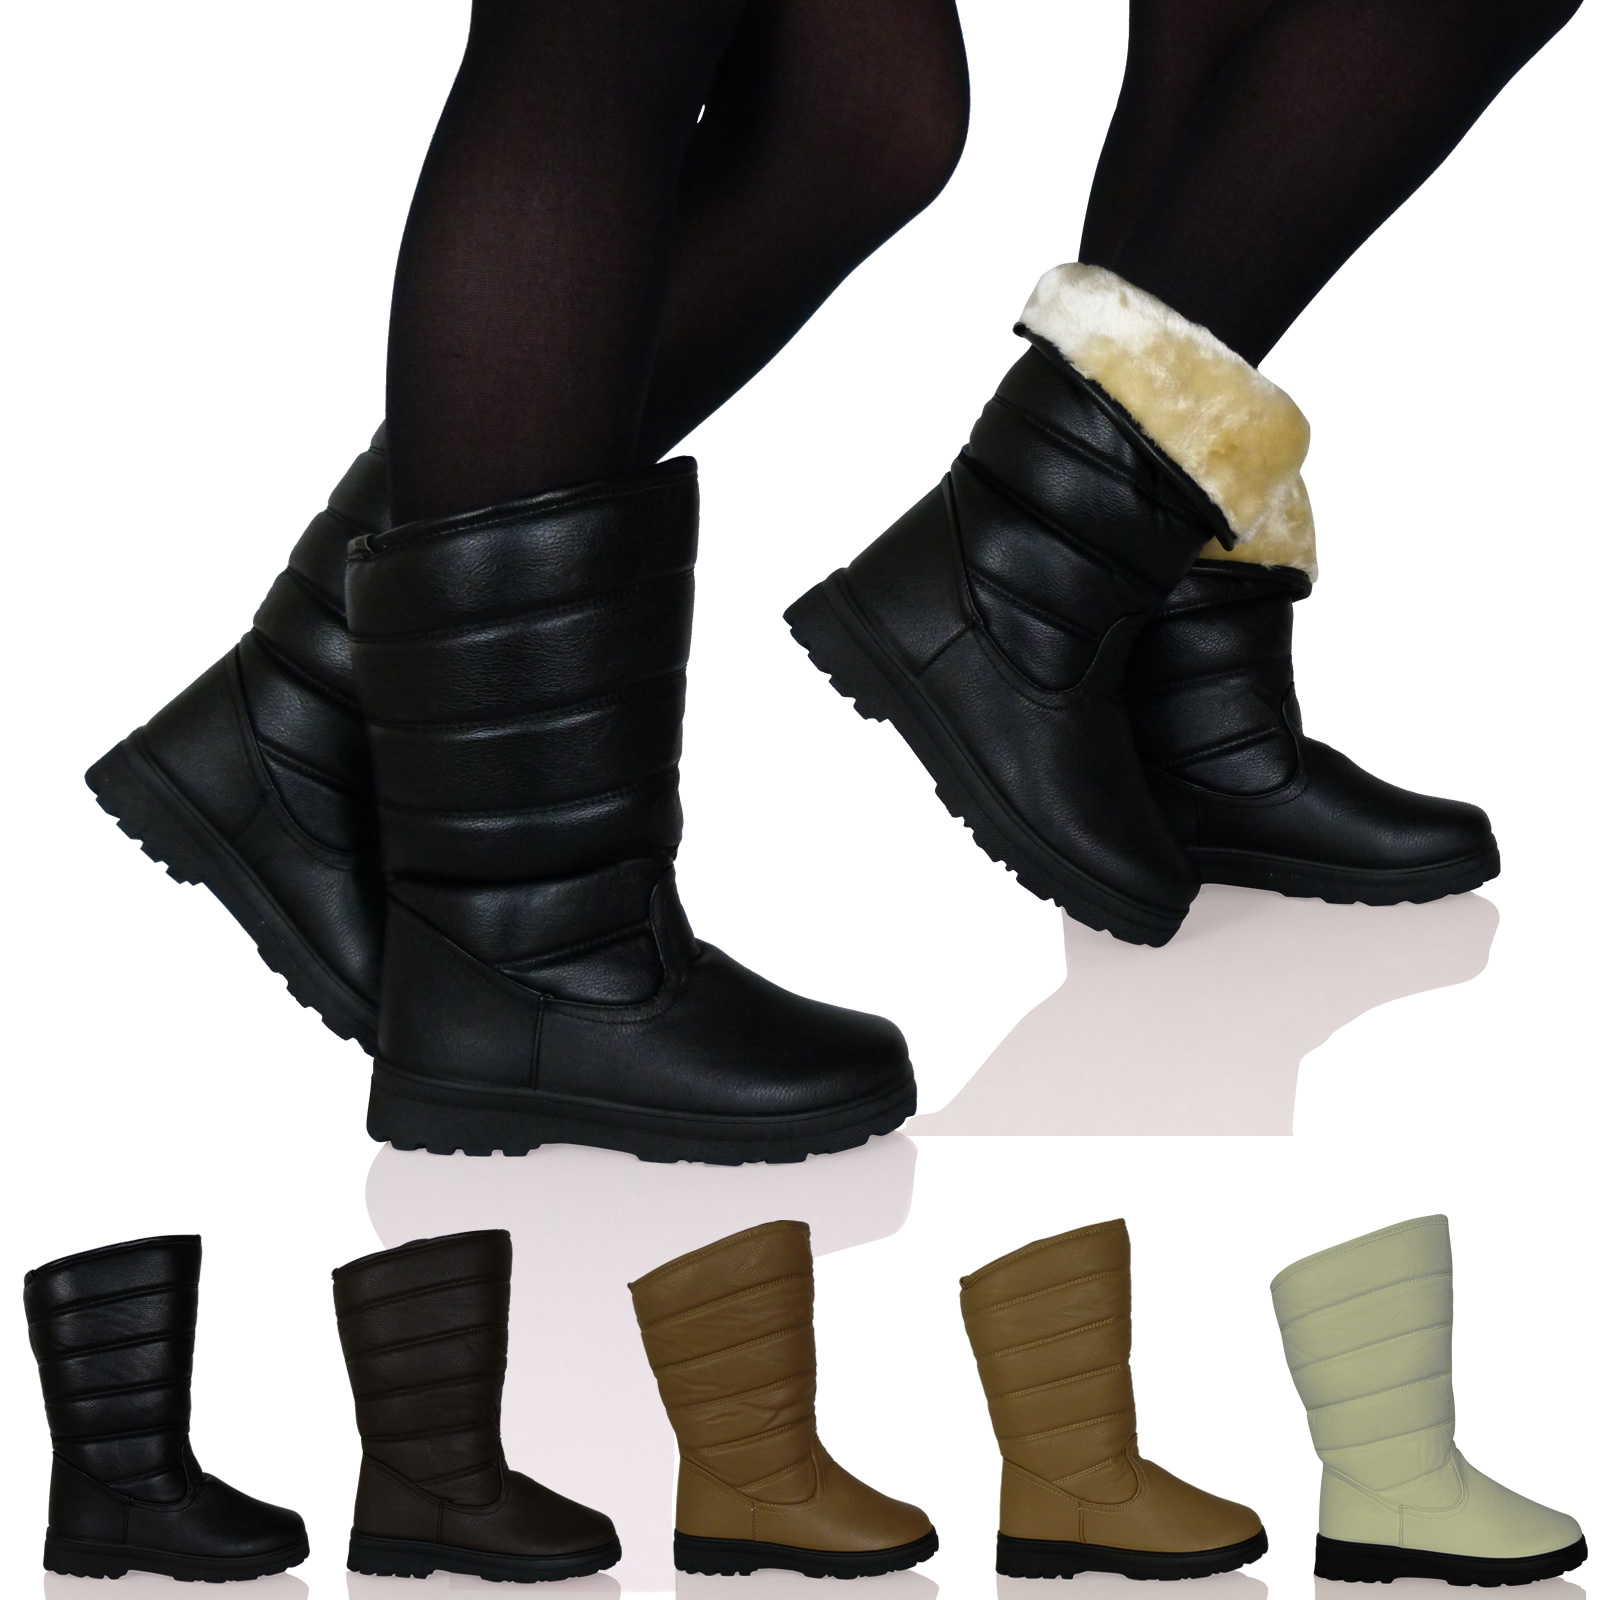 New Womens Ladies Thick Sole Winter Snow Boots Fully Fur Lined Shoes Size